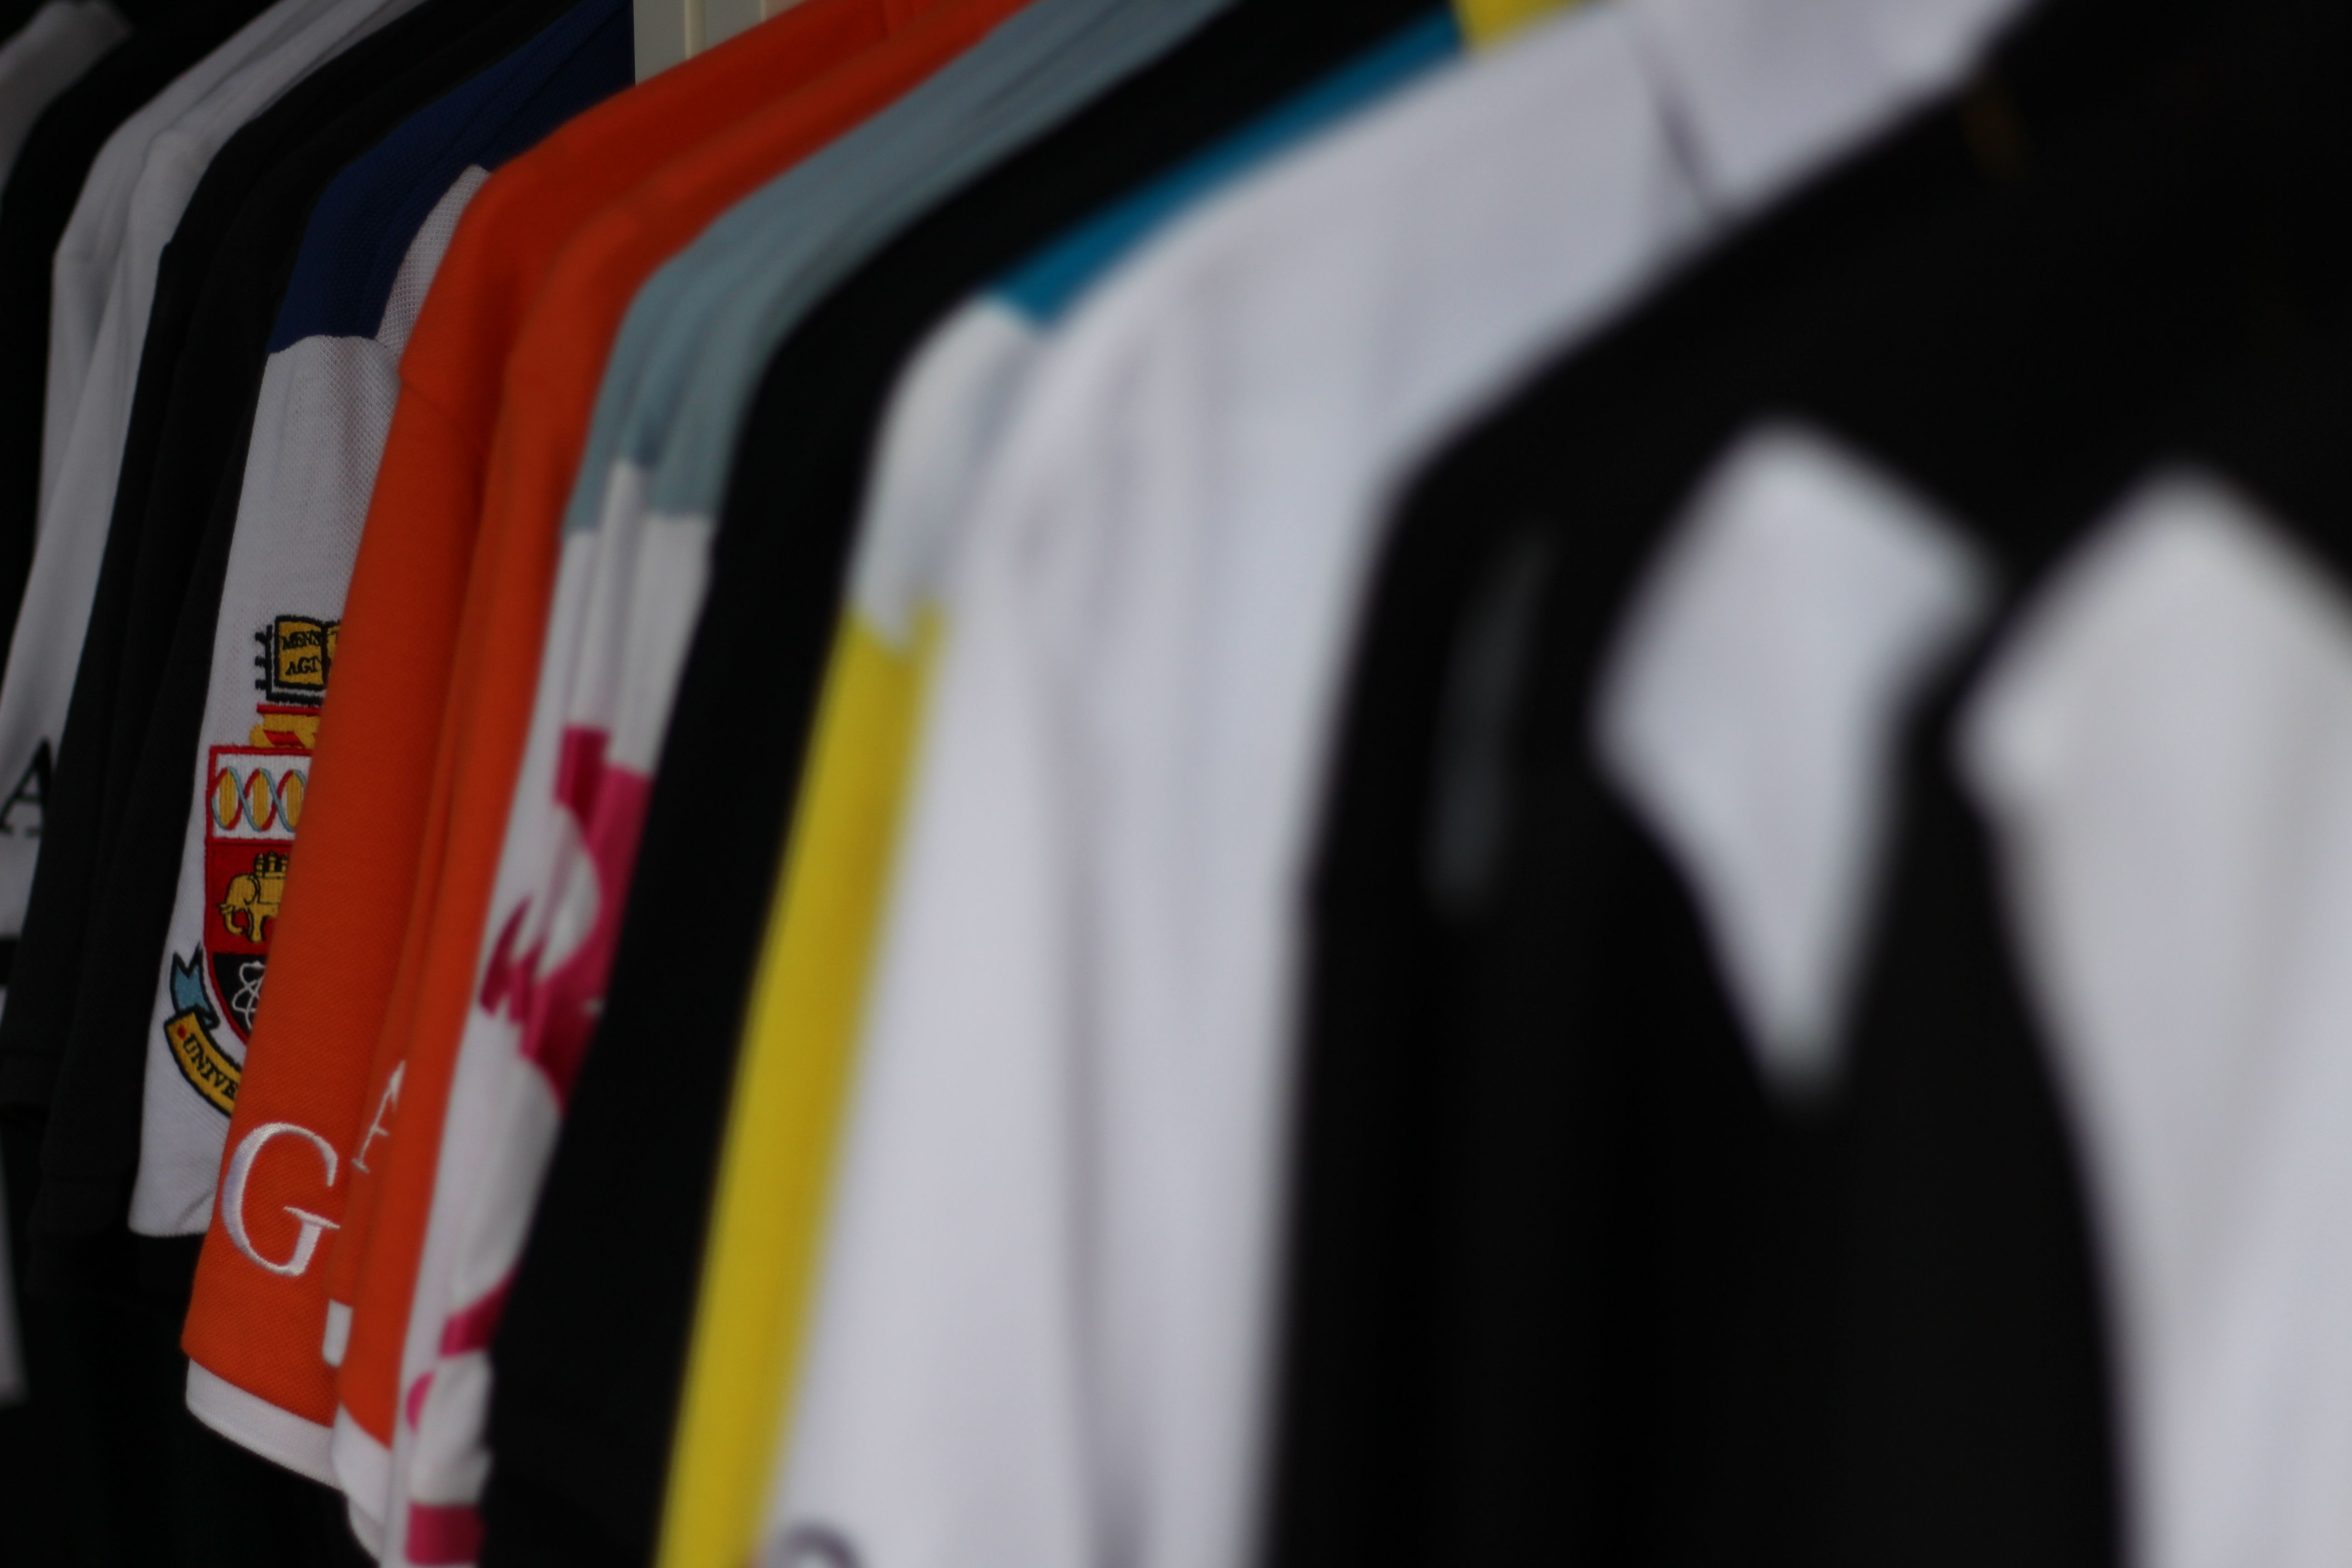 Our StaaG polo shirts with luxury detailing and innovative